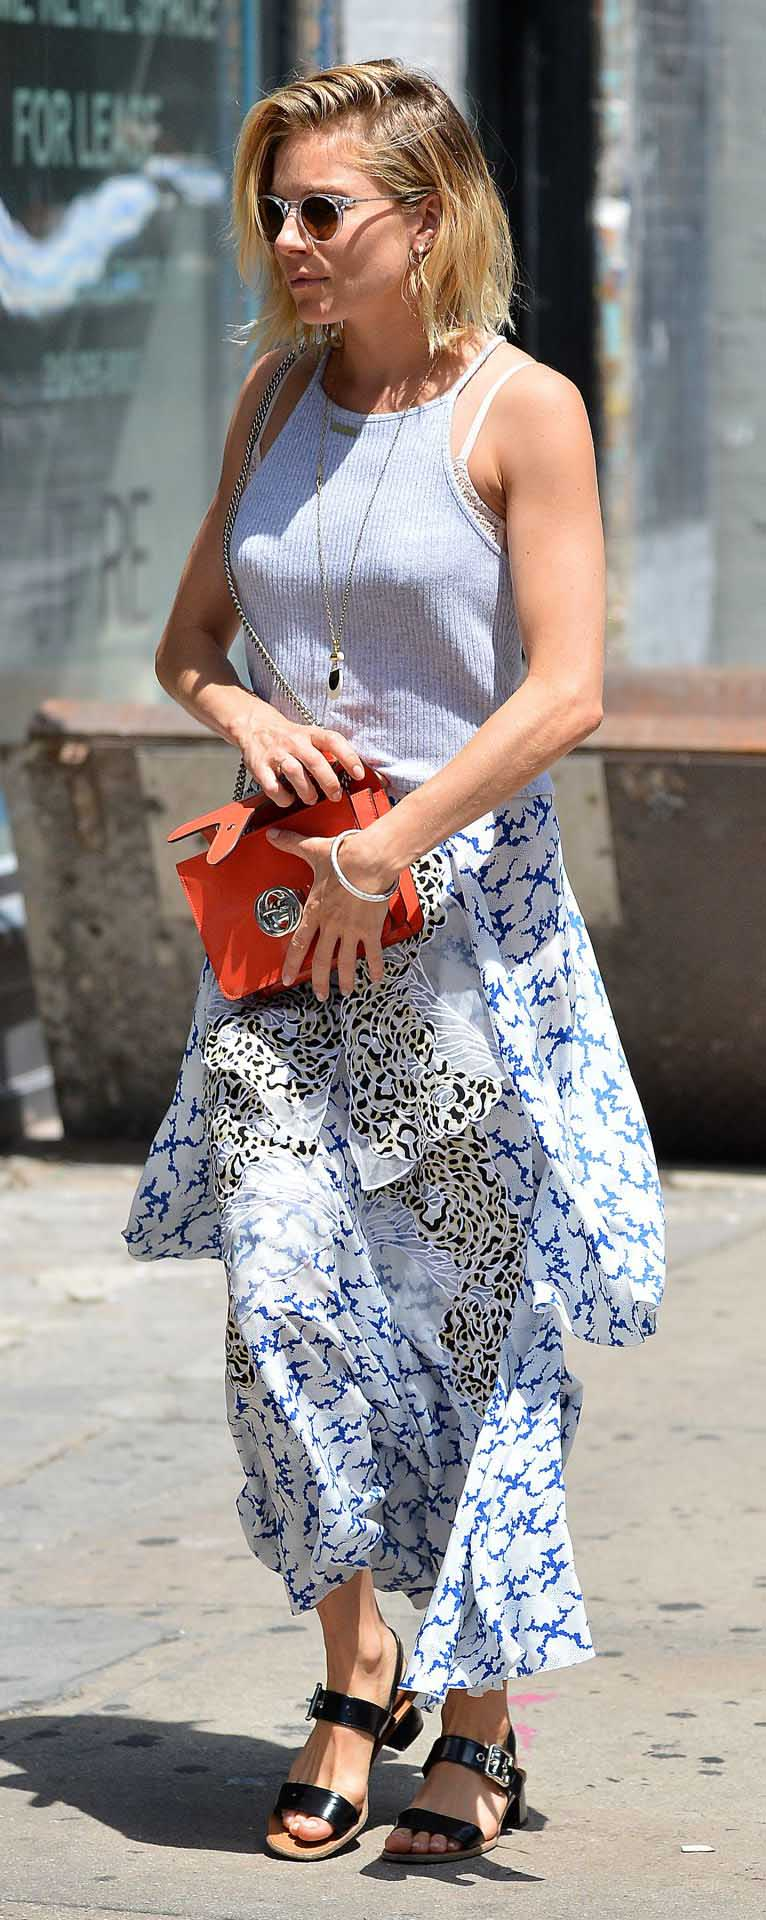 white-maxi-skirt-print-white-top-red-bag-black-shoe-sandals-sun-siennamiller-spring-summer-blonde-lunch.jpg